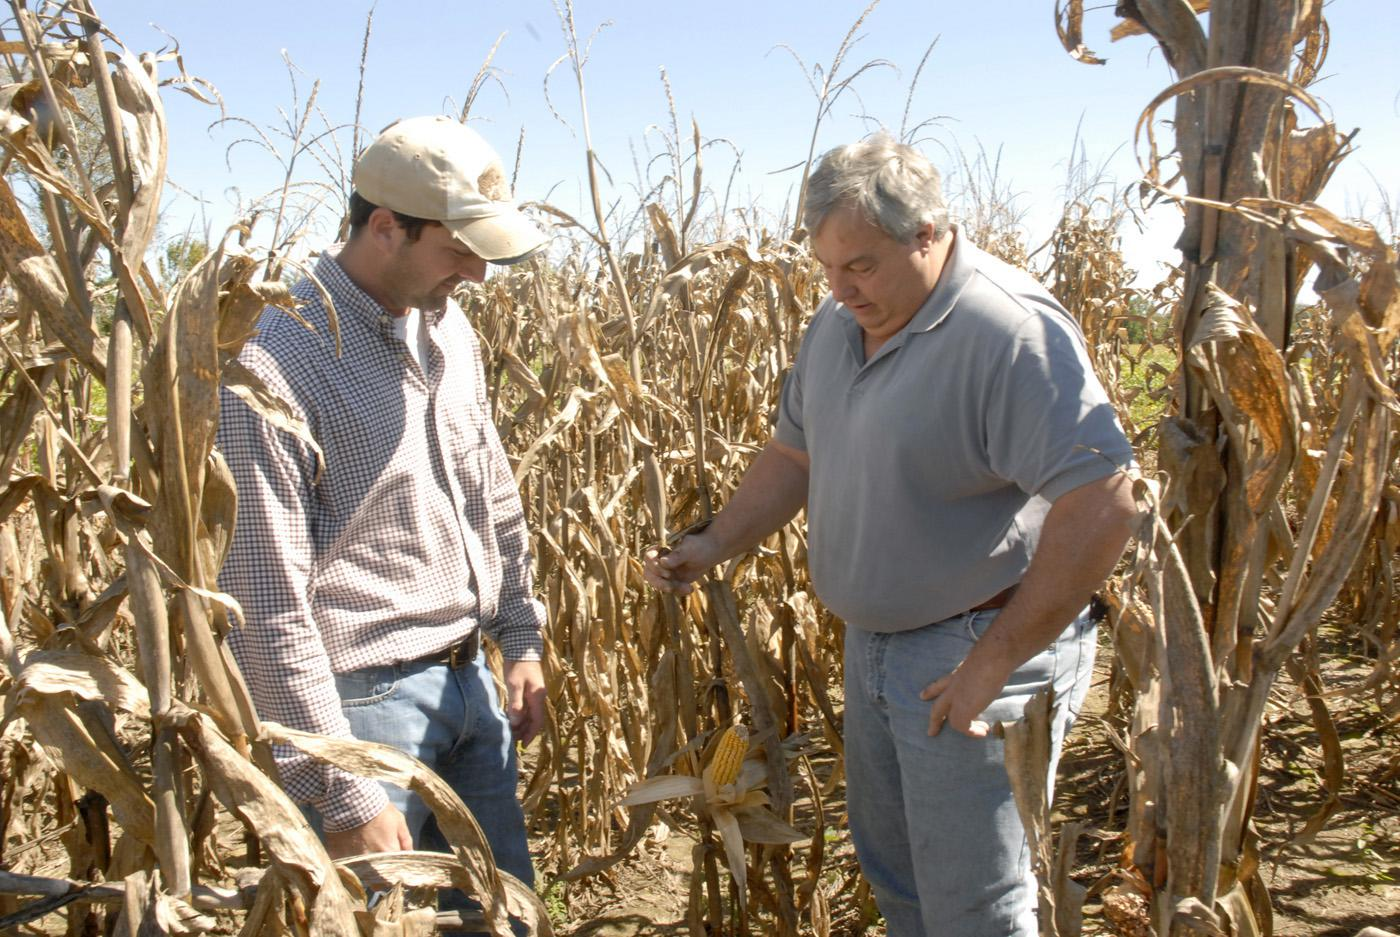 MAFES variety testing operations manager Brad Burgess, left, and Jimmy Sneed, a grower from Senatobia, visit a corn plot on Sneed's farm near Hernando shortly before the 2009 harvest. (Photo by Linda Breazeale)